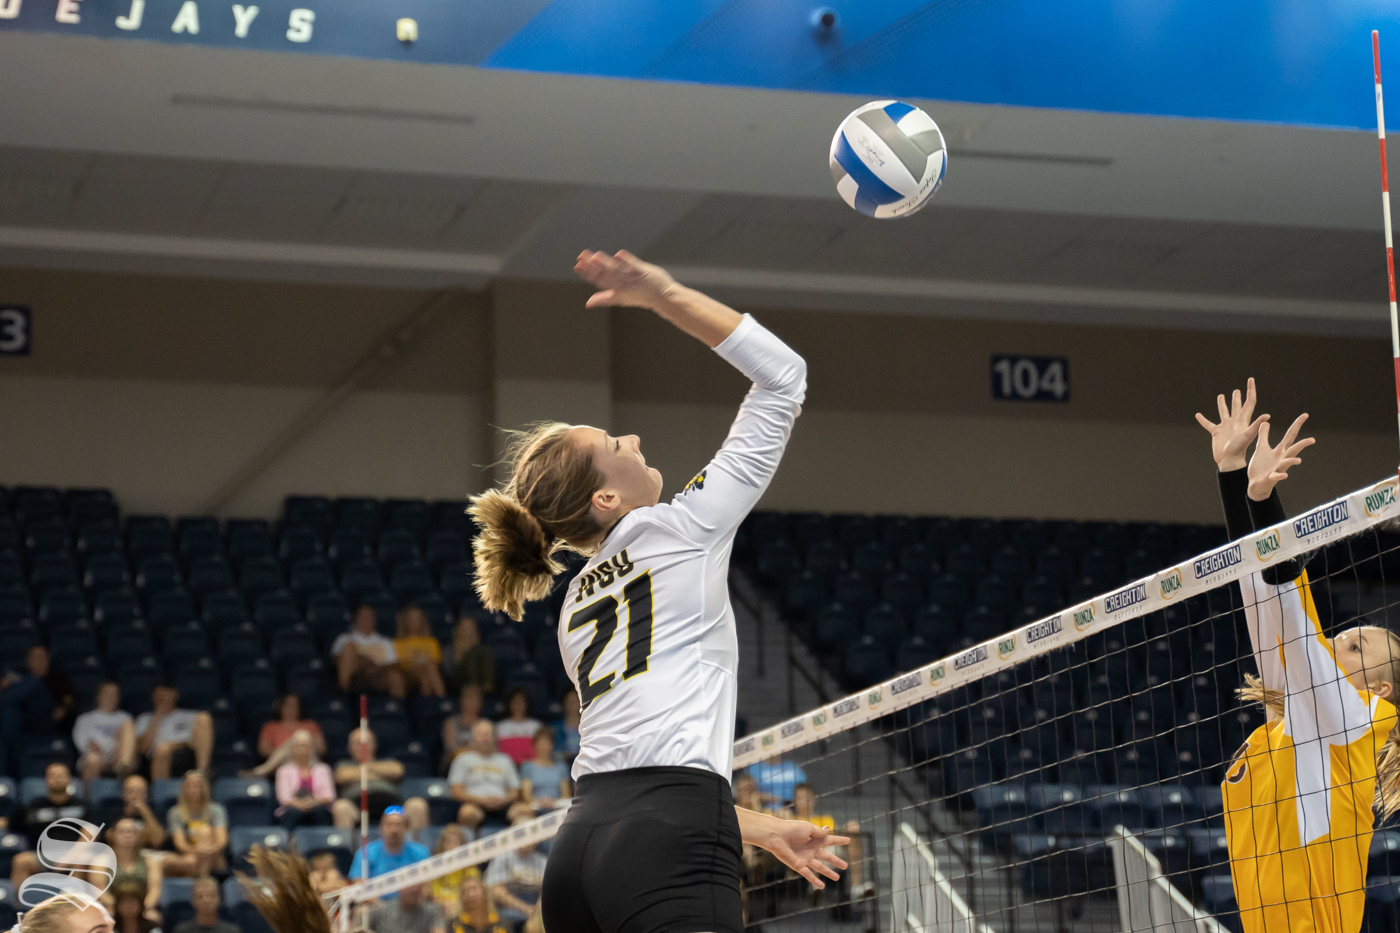 Wichita State redshirt sophomore Megan Taflinger goes up for a kill during the game against Wyoming on September 20, 2019 at D.J. Soko arena.